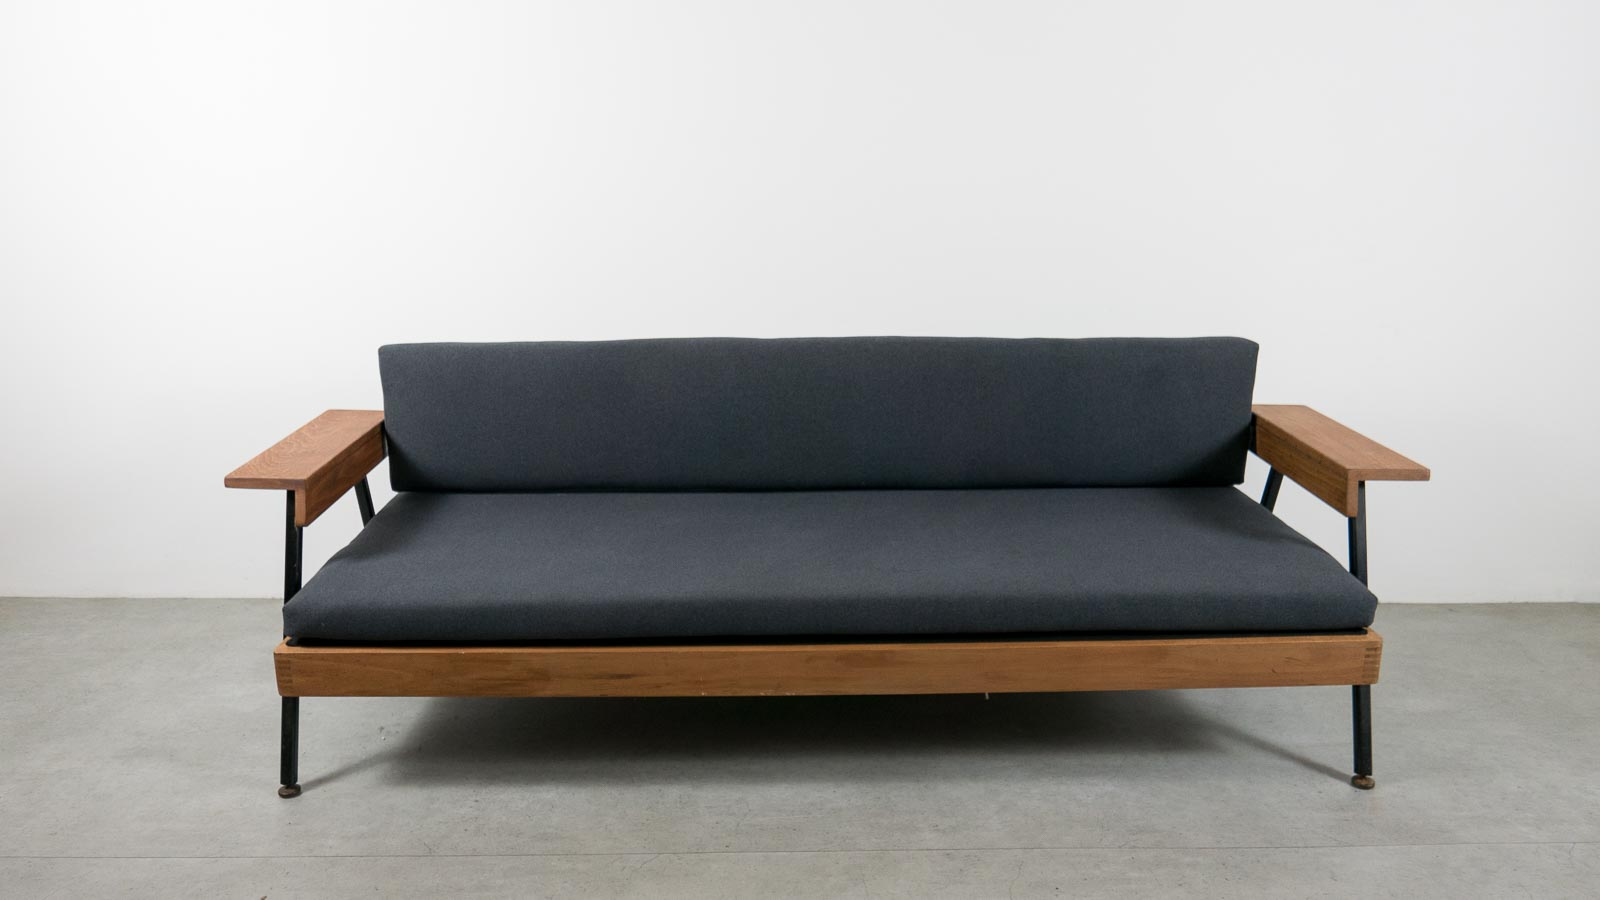 EBTD MidCentury Single Sofa Bed MidCentury Modern Lounge